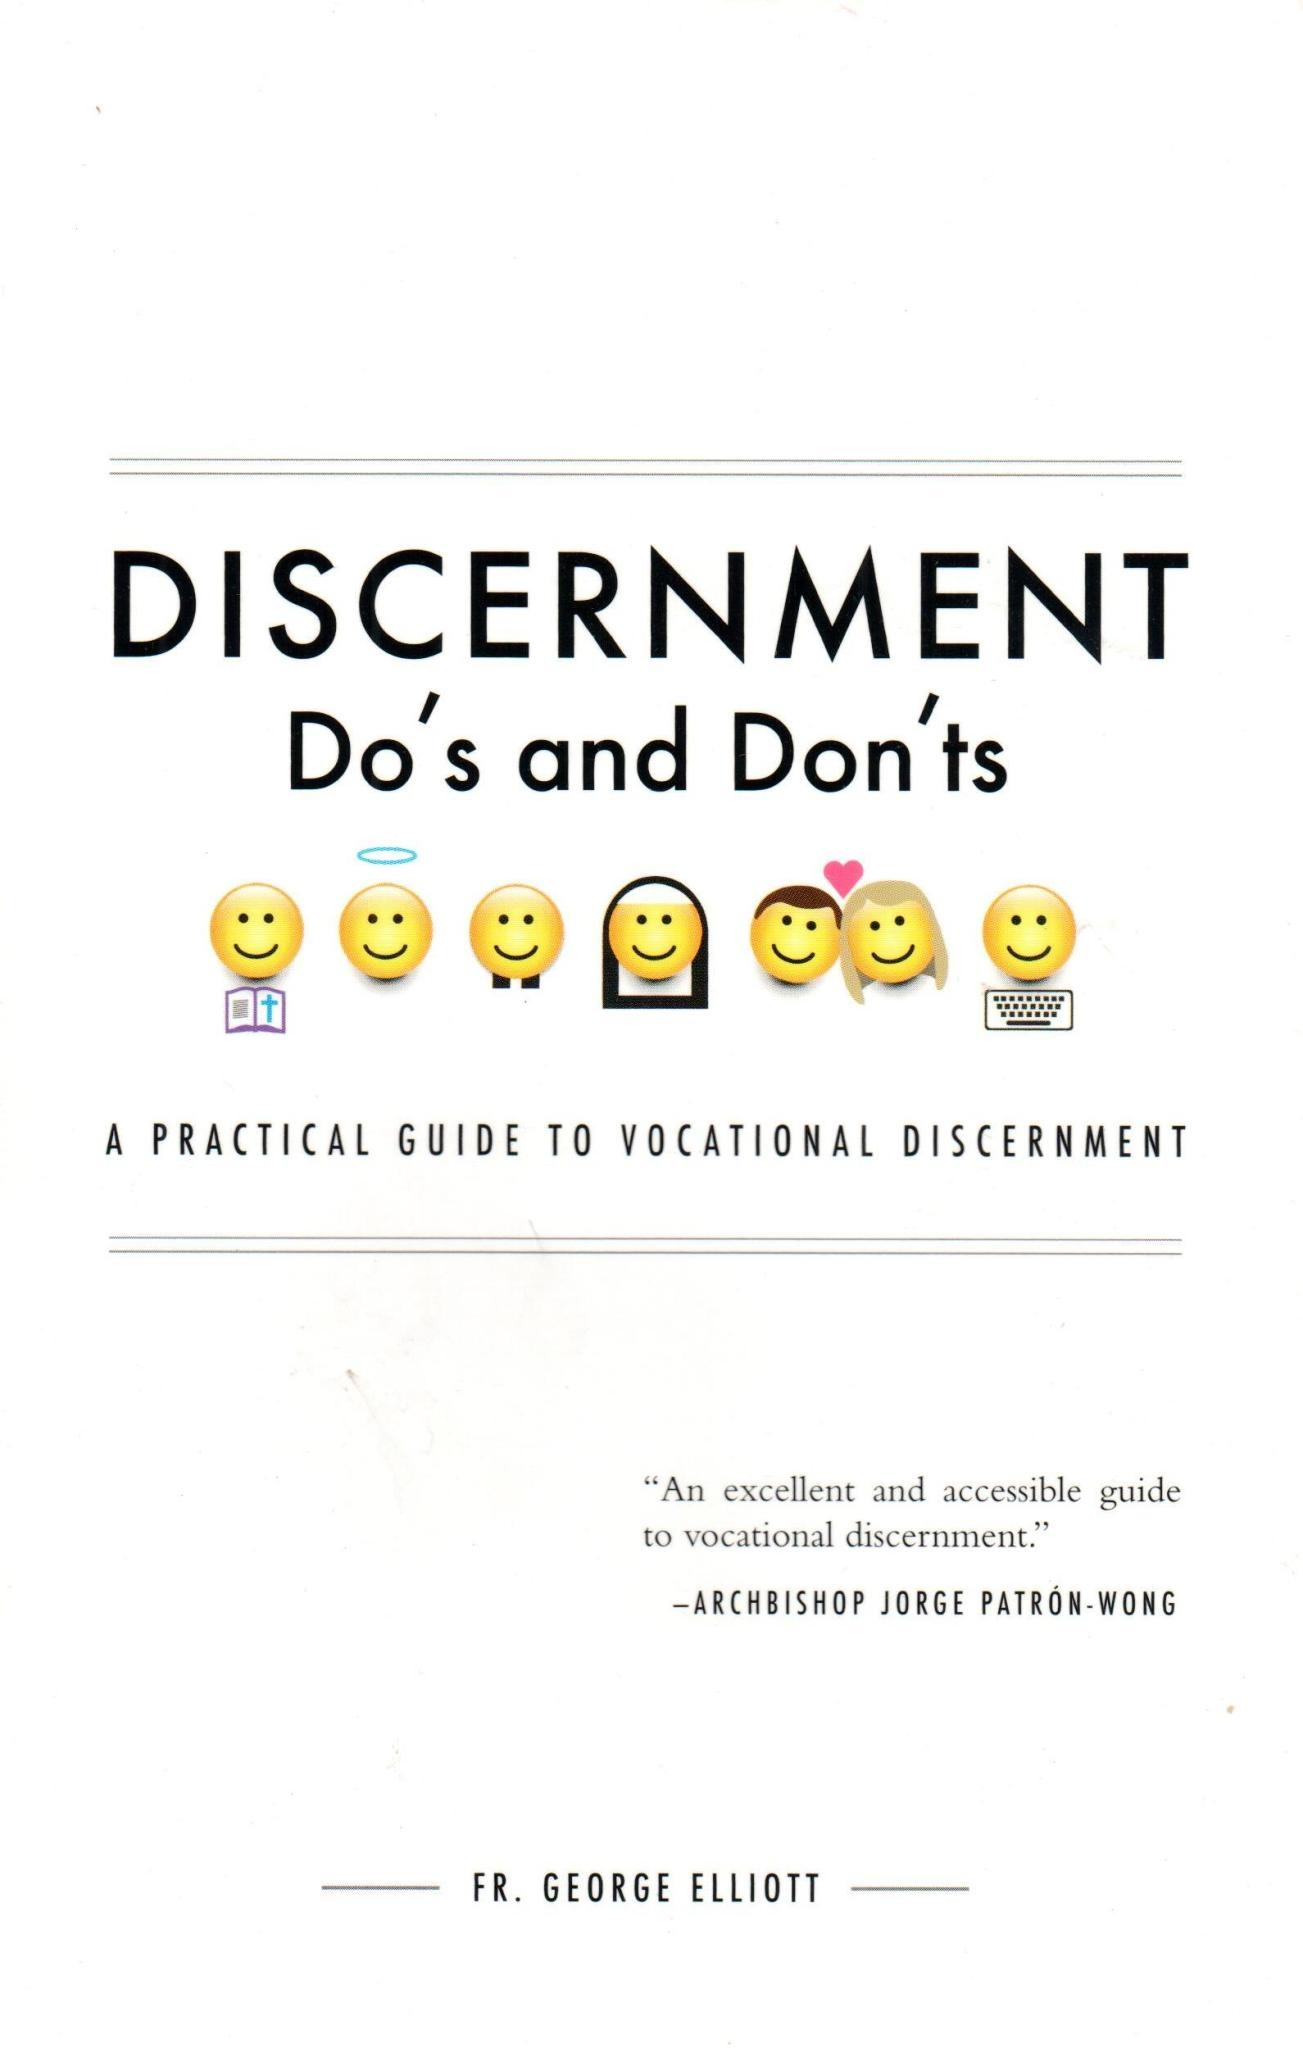 Discernment Do's and Dont's: A Practical Guide to Vocational Discernment